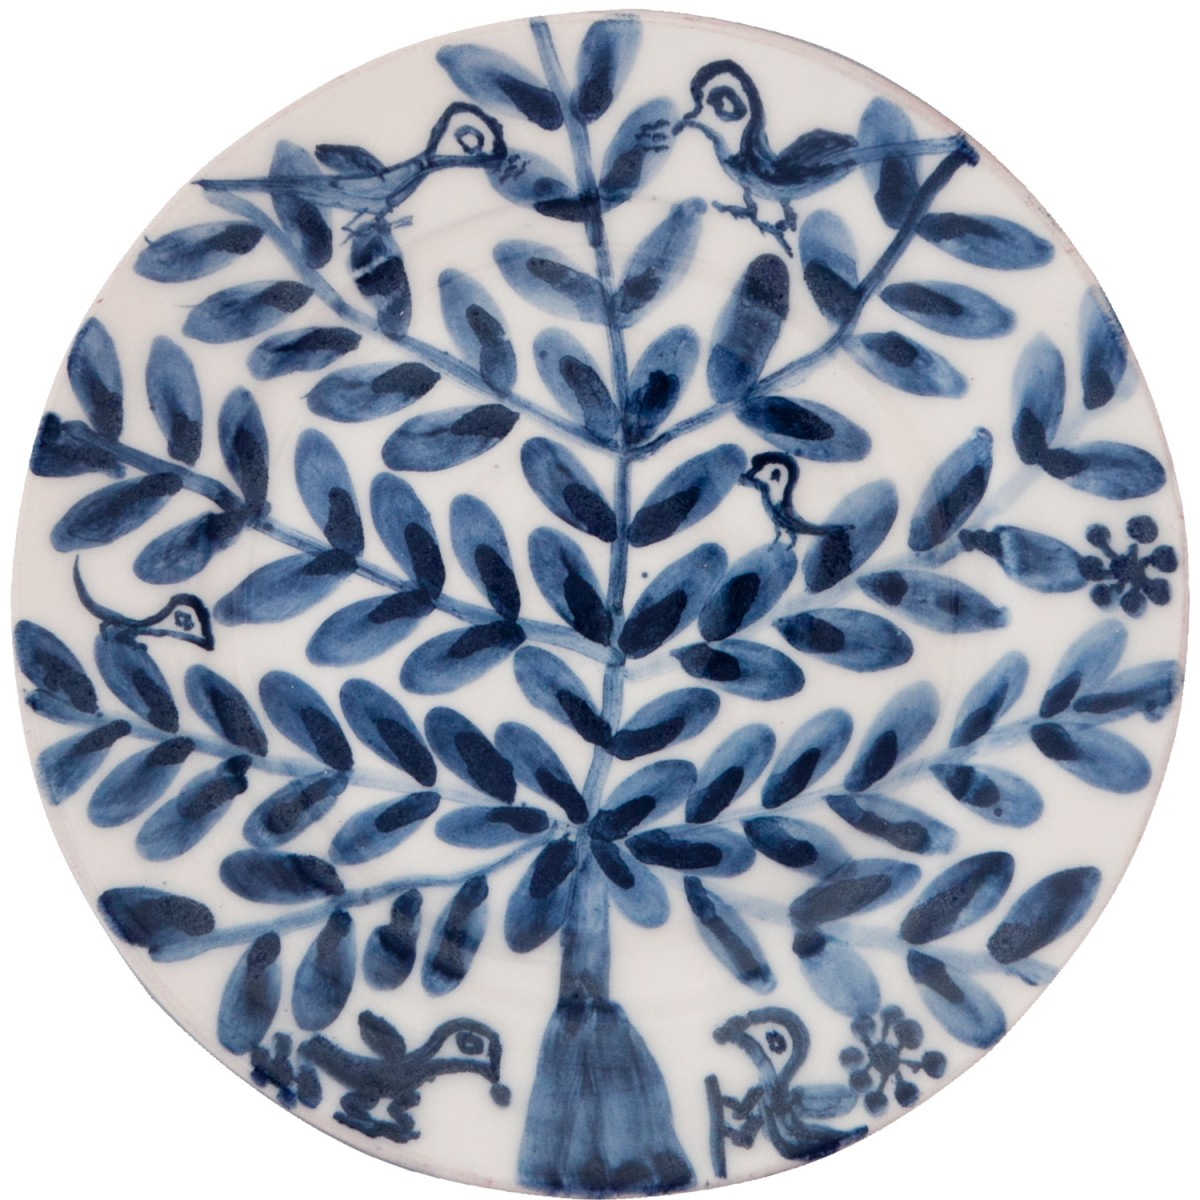 Decorative Blue and white plates - Birds on tree II - 1